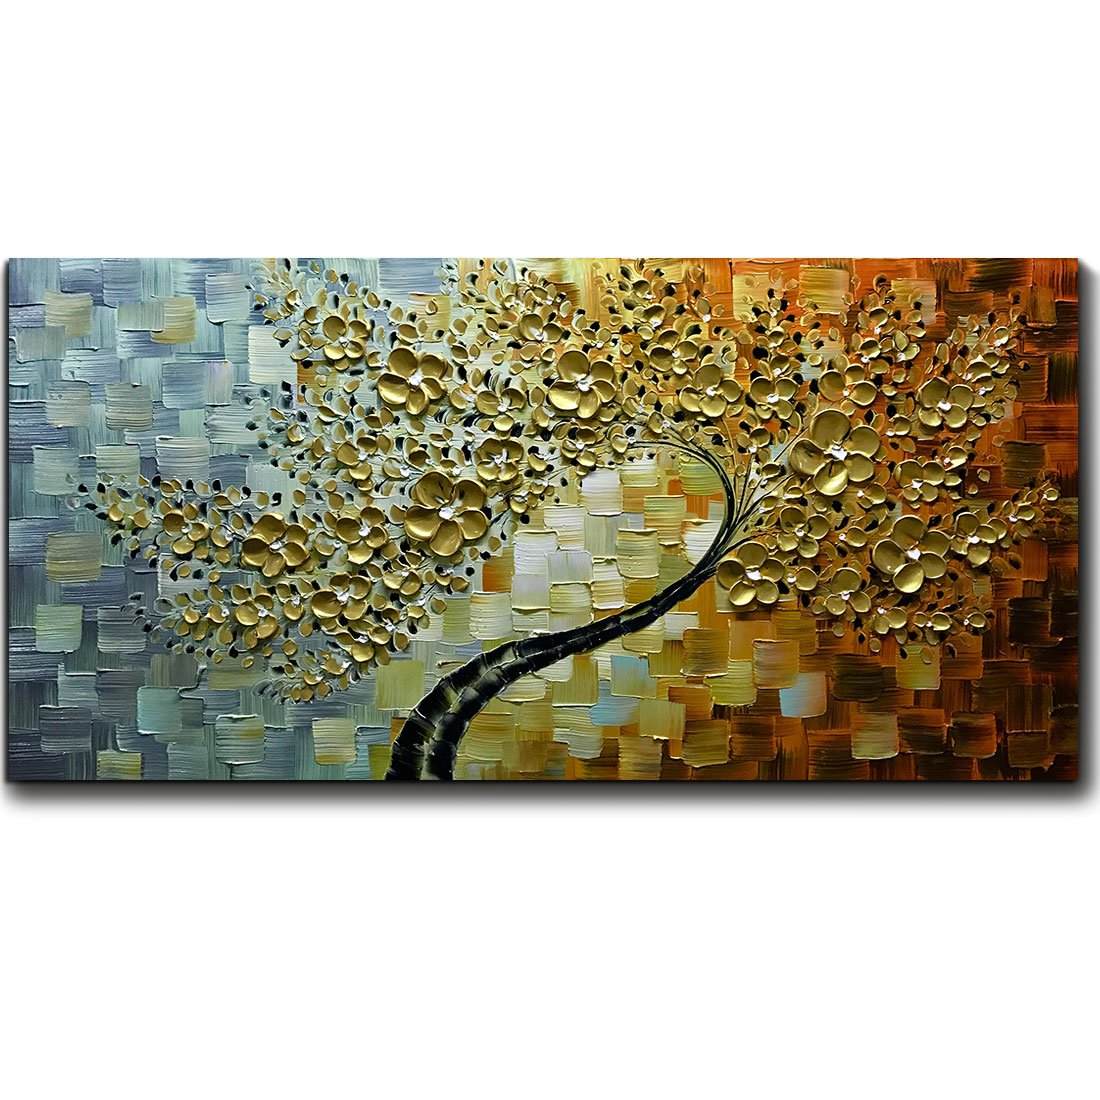 V-inspire Golden Flower Paintings, 24x48 Inch 3D Abstract Paintings Oil Hand Painting On Canvas Wood Inside Framed Ready to Hang Wall Decoration For Living Room Bed Room by V-inspire